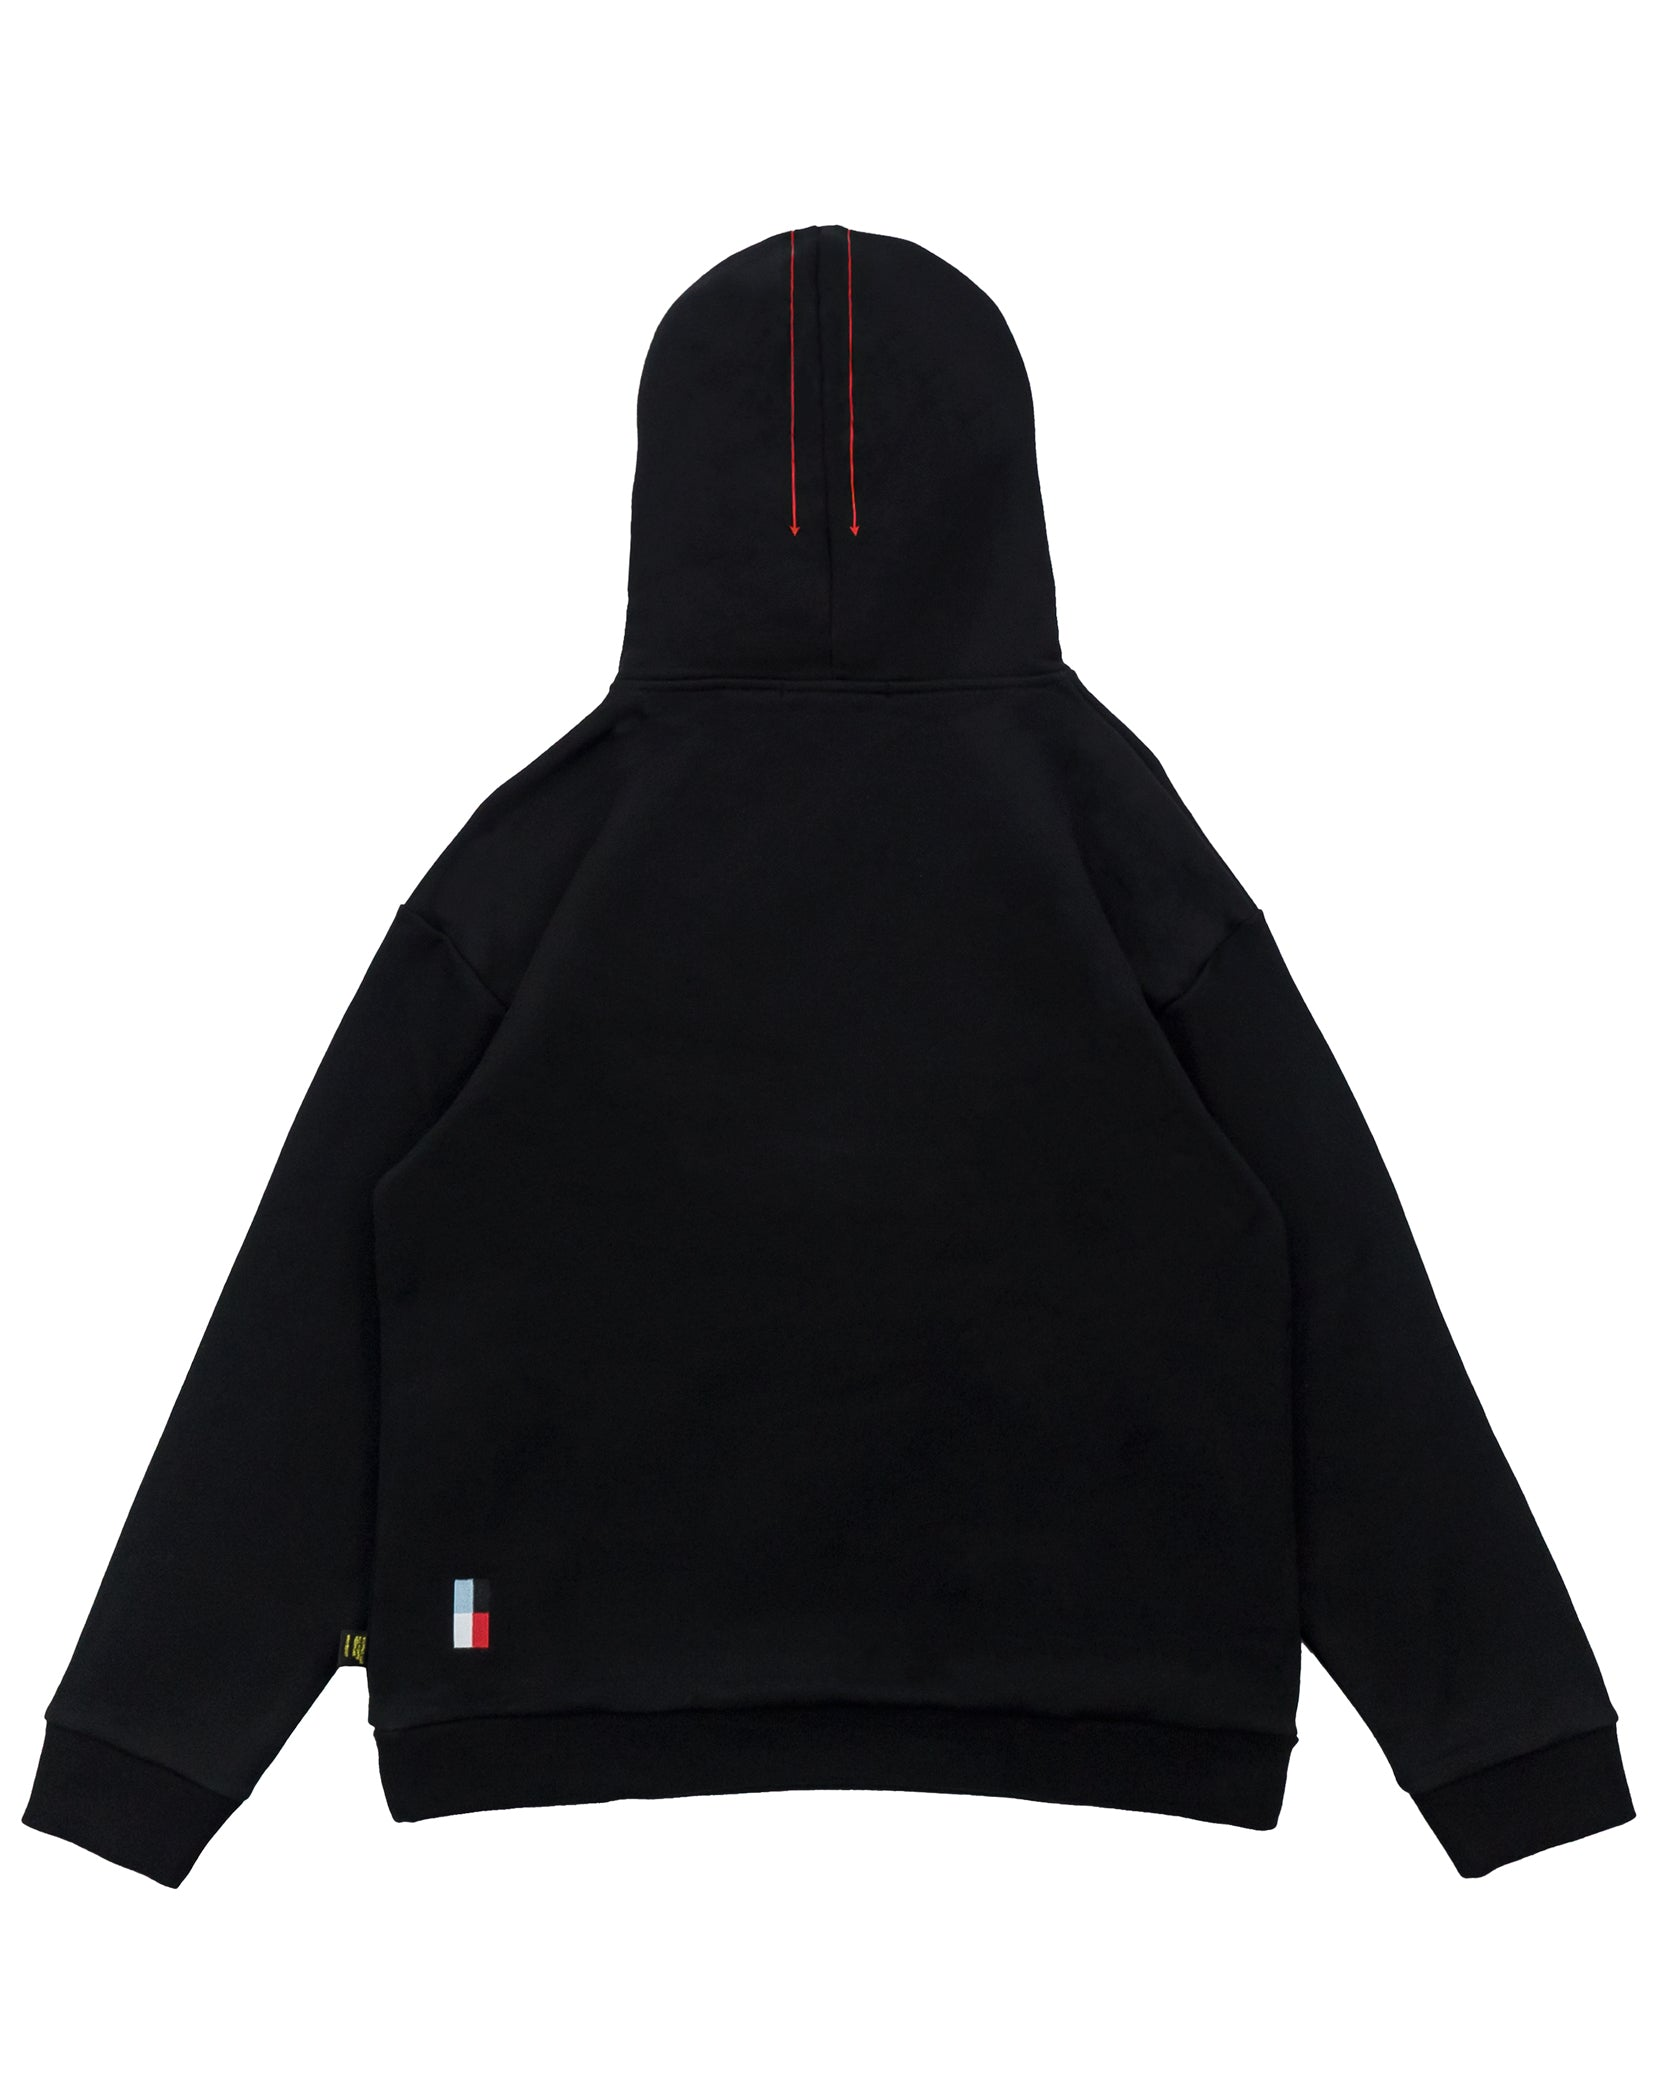 DIAGRAM HOODIE - BLACK / RED